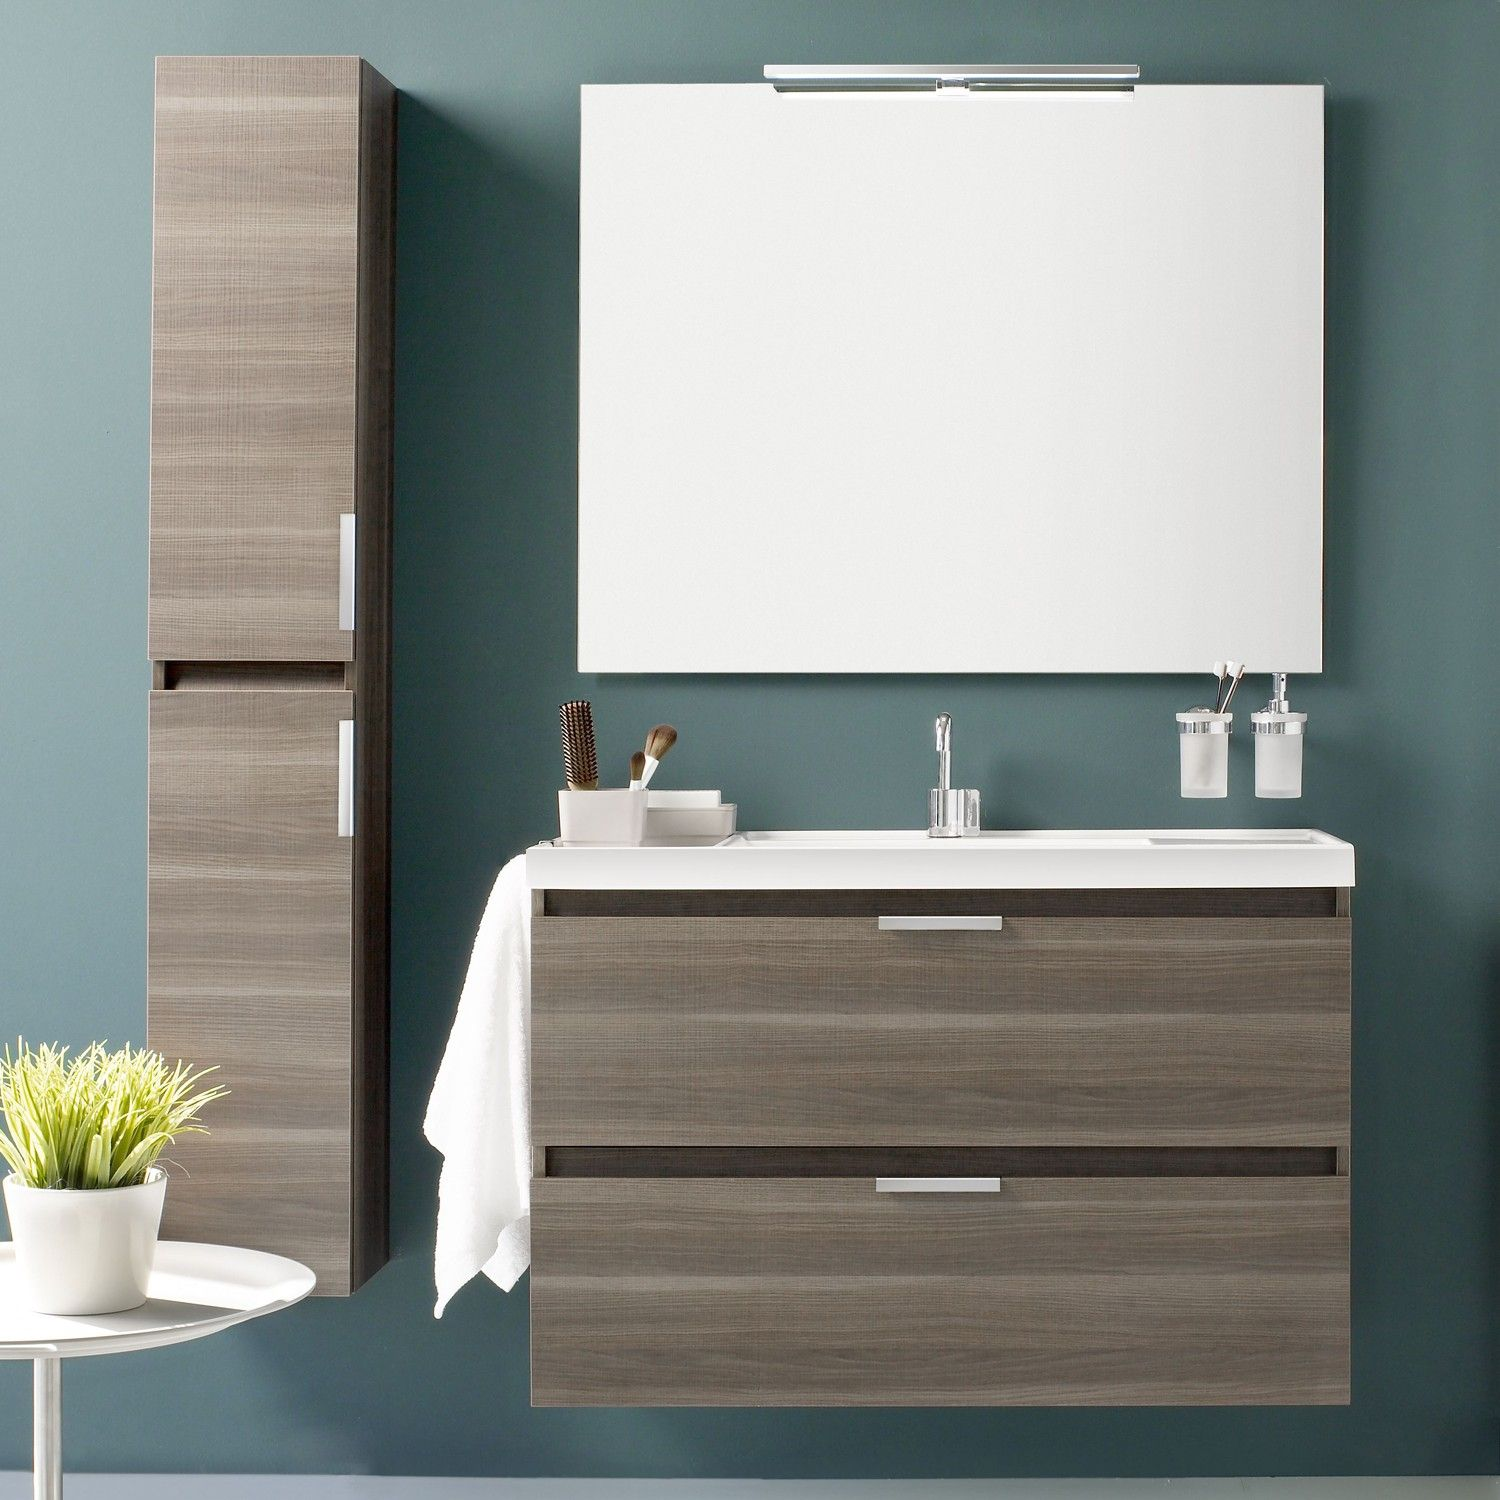 The Large, 39-Inch, B-Box 2 Drawer Vanity Cabinet Offers